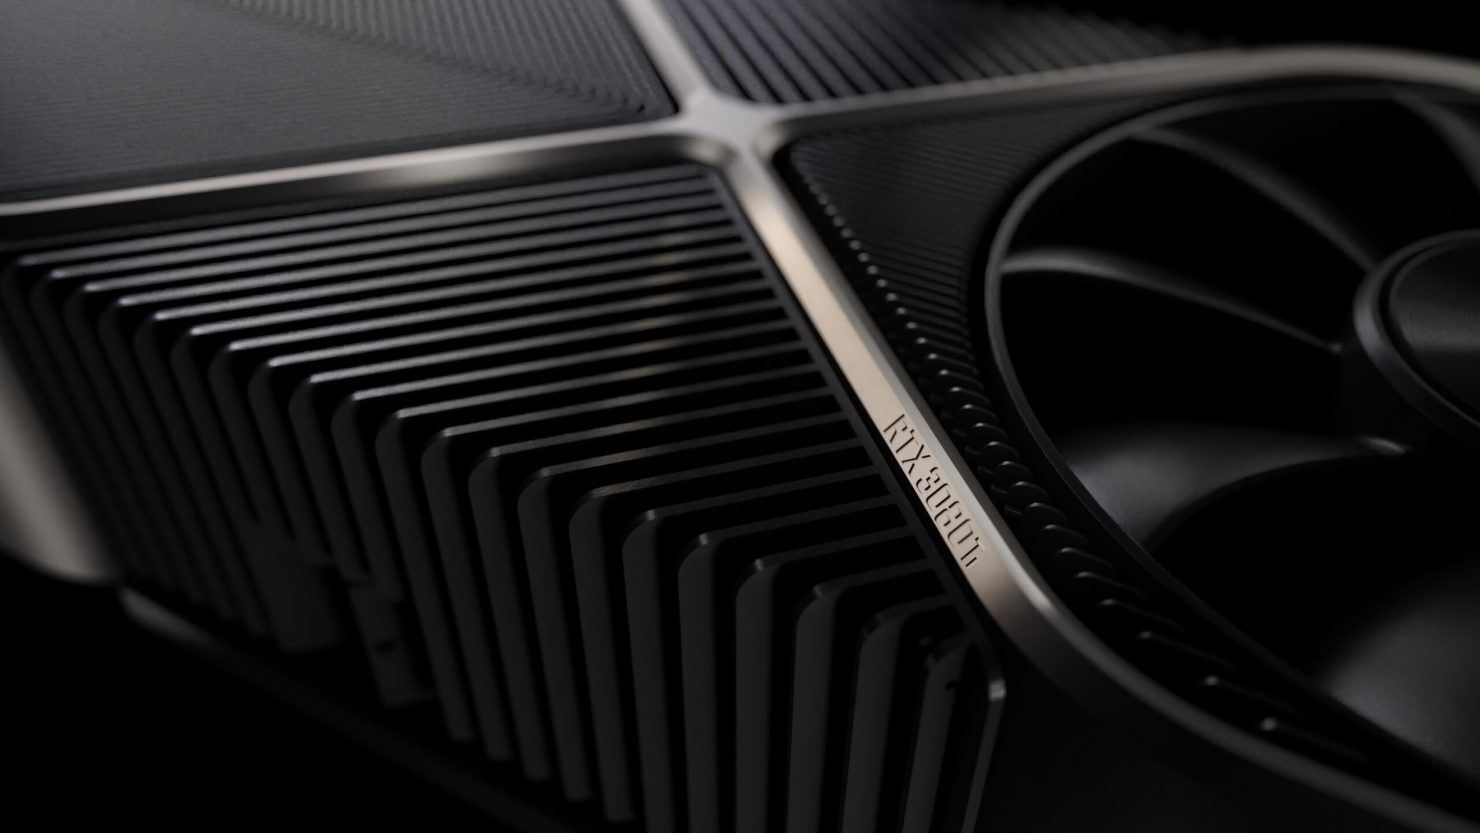 nvidia-geforce-rtx-3080-ti-gaming-graphics-card-unveil-on-18th-may,-reviews-on-25th-&-launch-on-26th-may